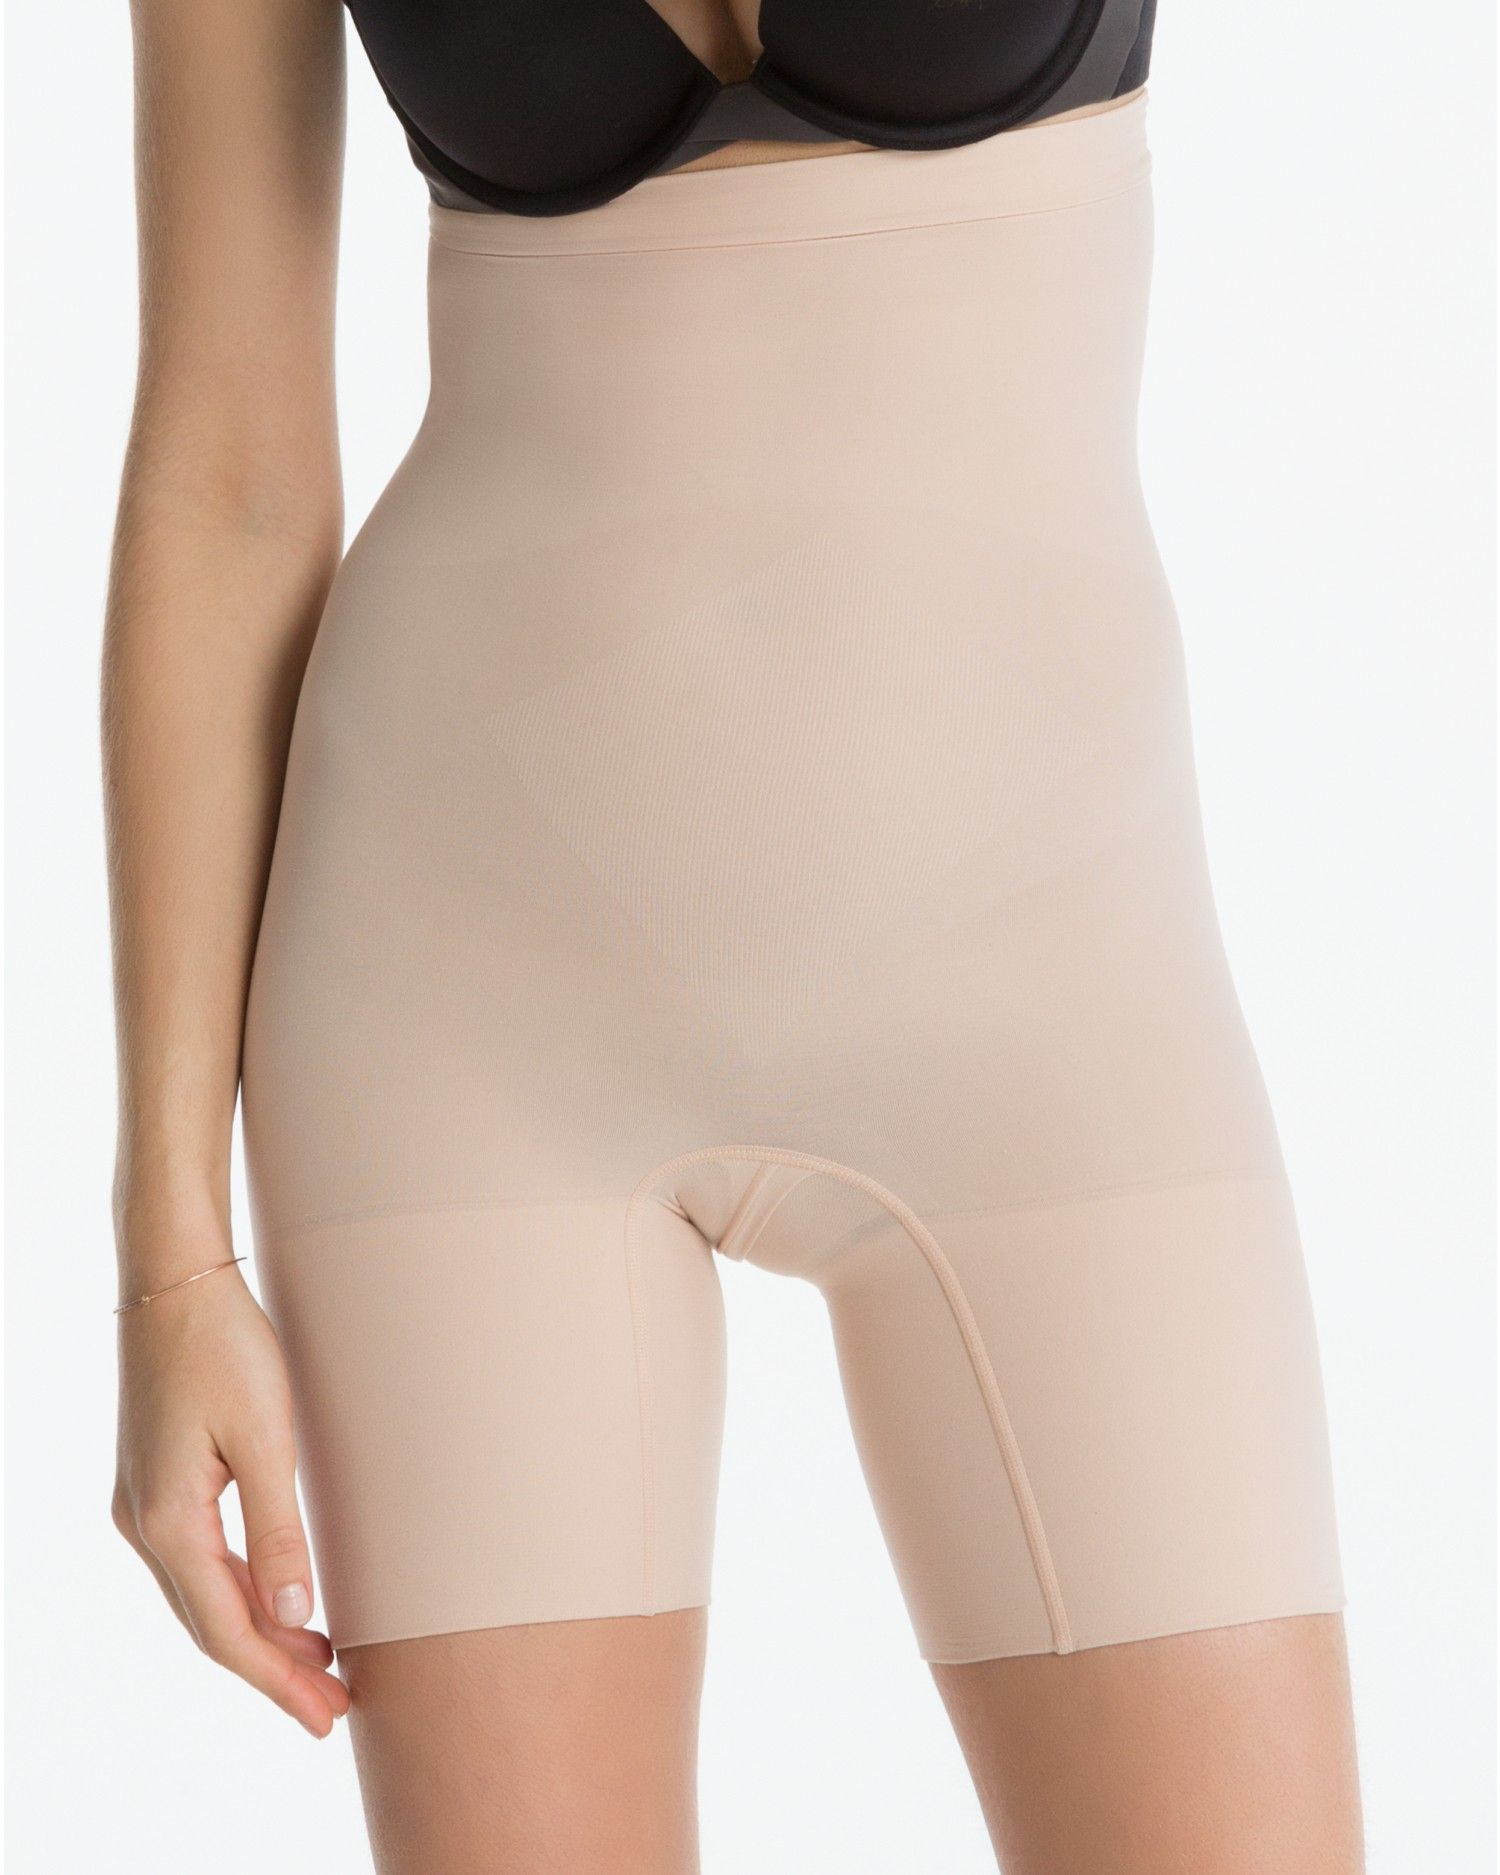 2fe77668ca0 The Spanx Difference The best from SPANX just got better! Lightweight,  all-day shaping that's center-seam free –the Higher Power Short was  reformulated ...